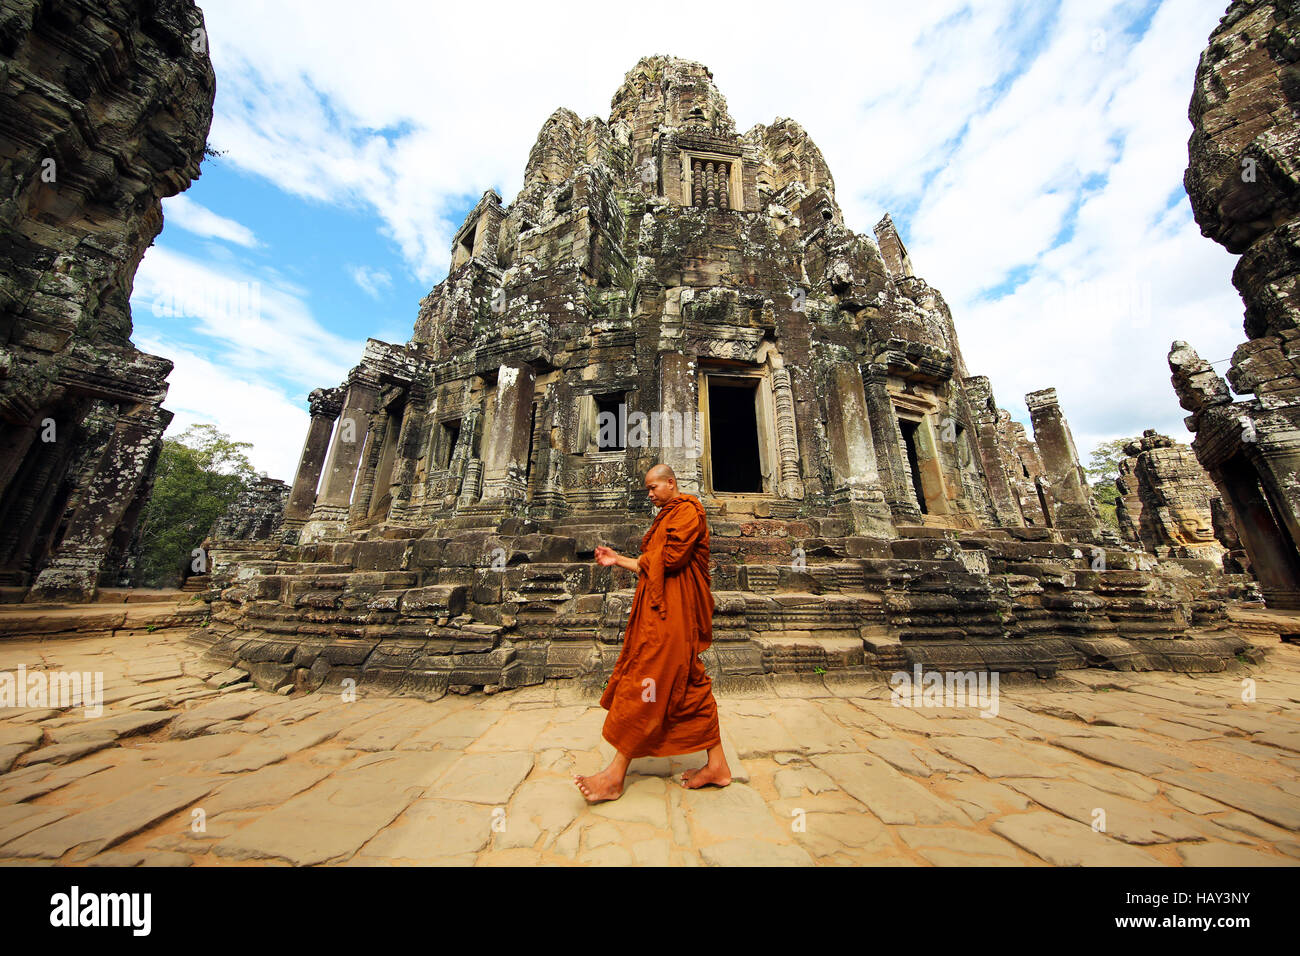 Buddhist monk in the ruins of the Bayon Khmer Temple, Angkor Thom , Siem Reap, Cambodia - Stock Image